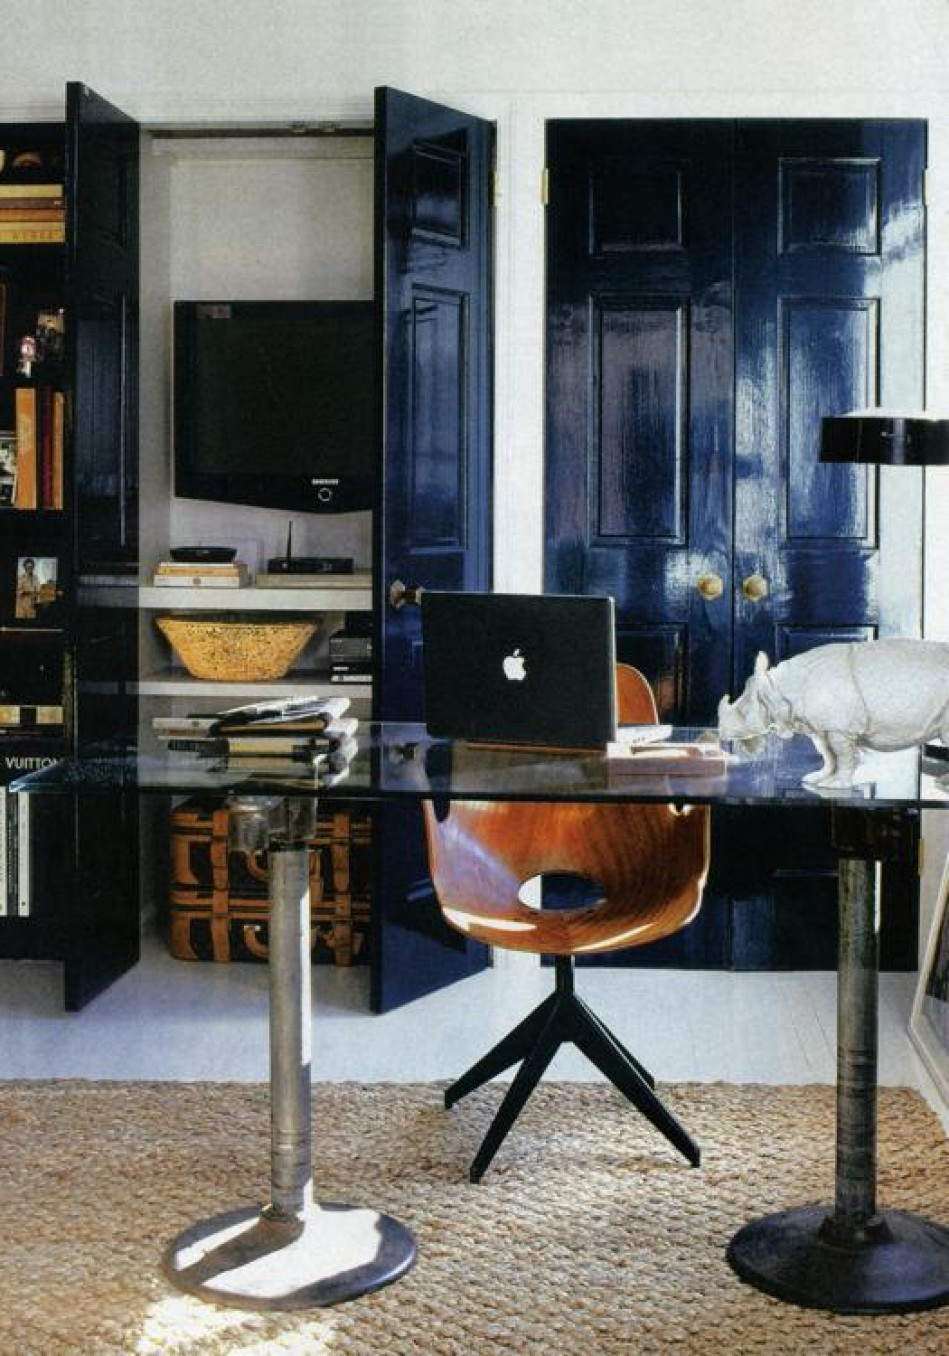 Charmant Nate Berkus Turns One End Of His Living Room Into An Office And  Entertainment Space.